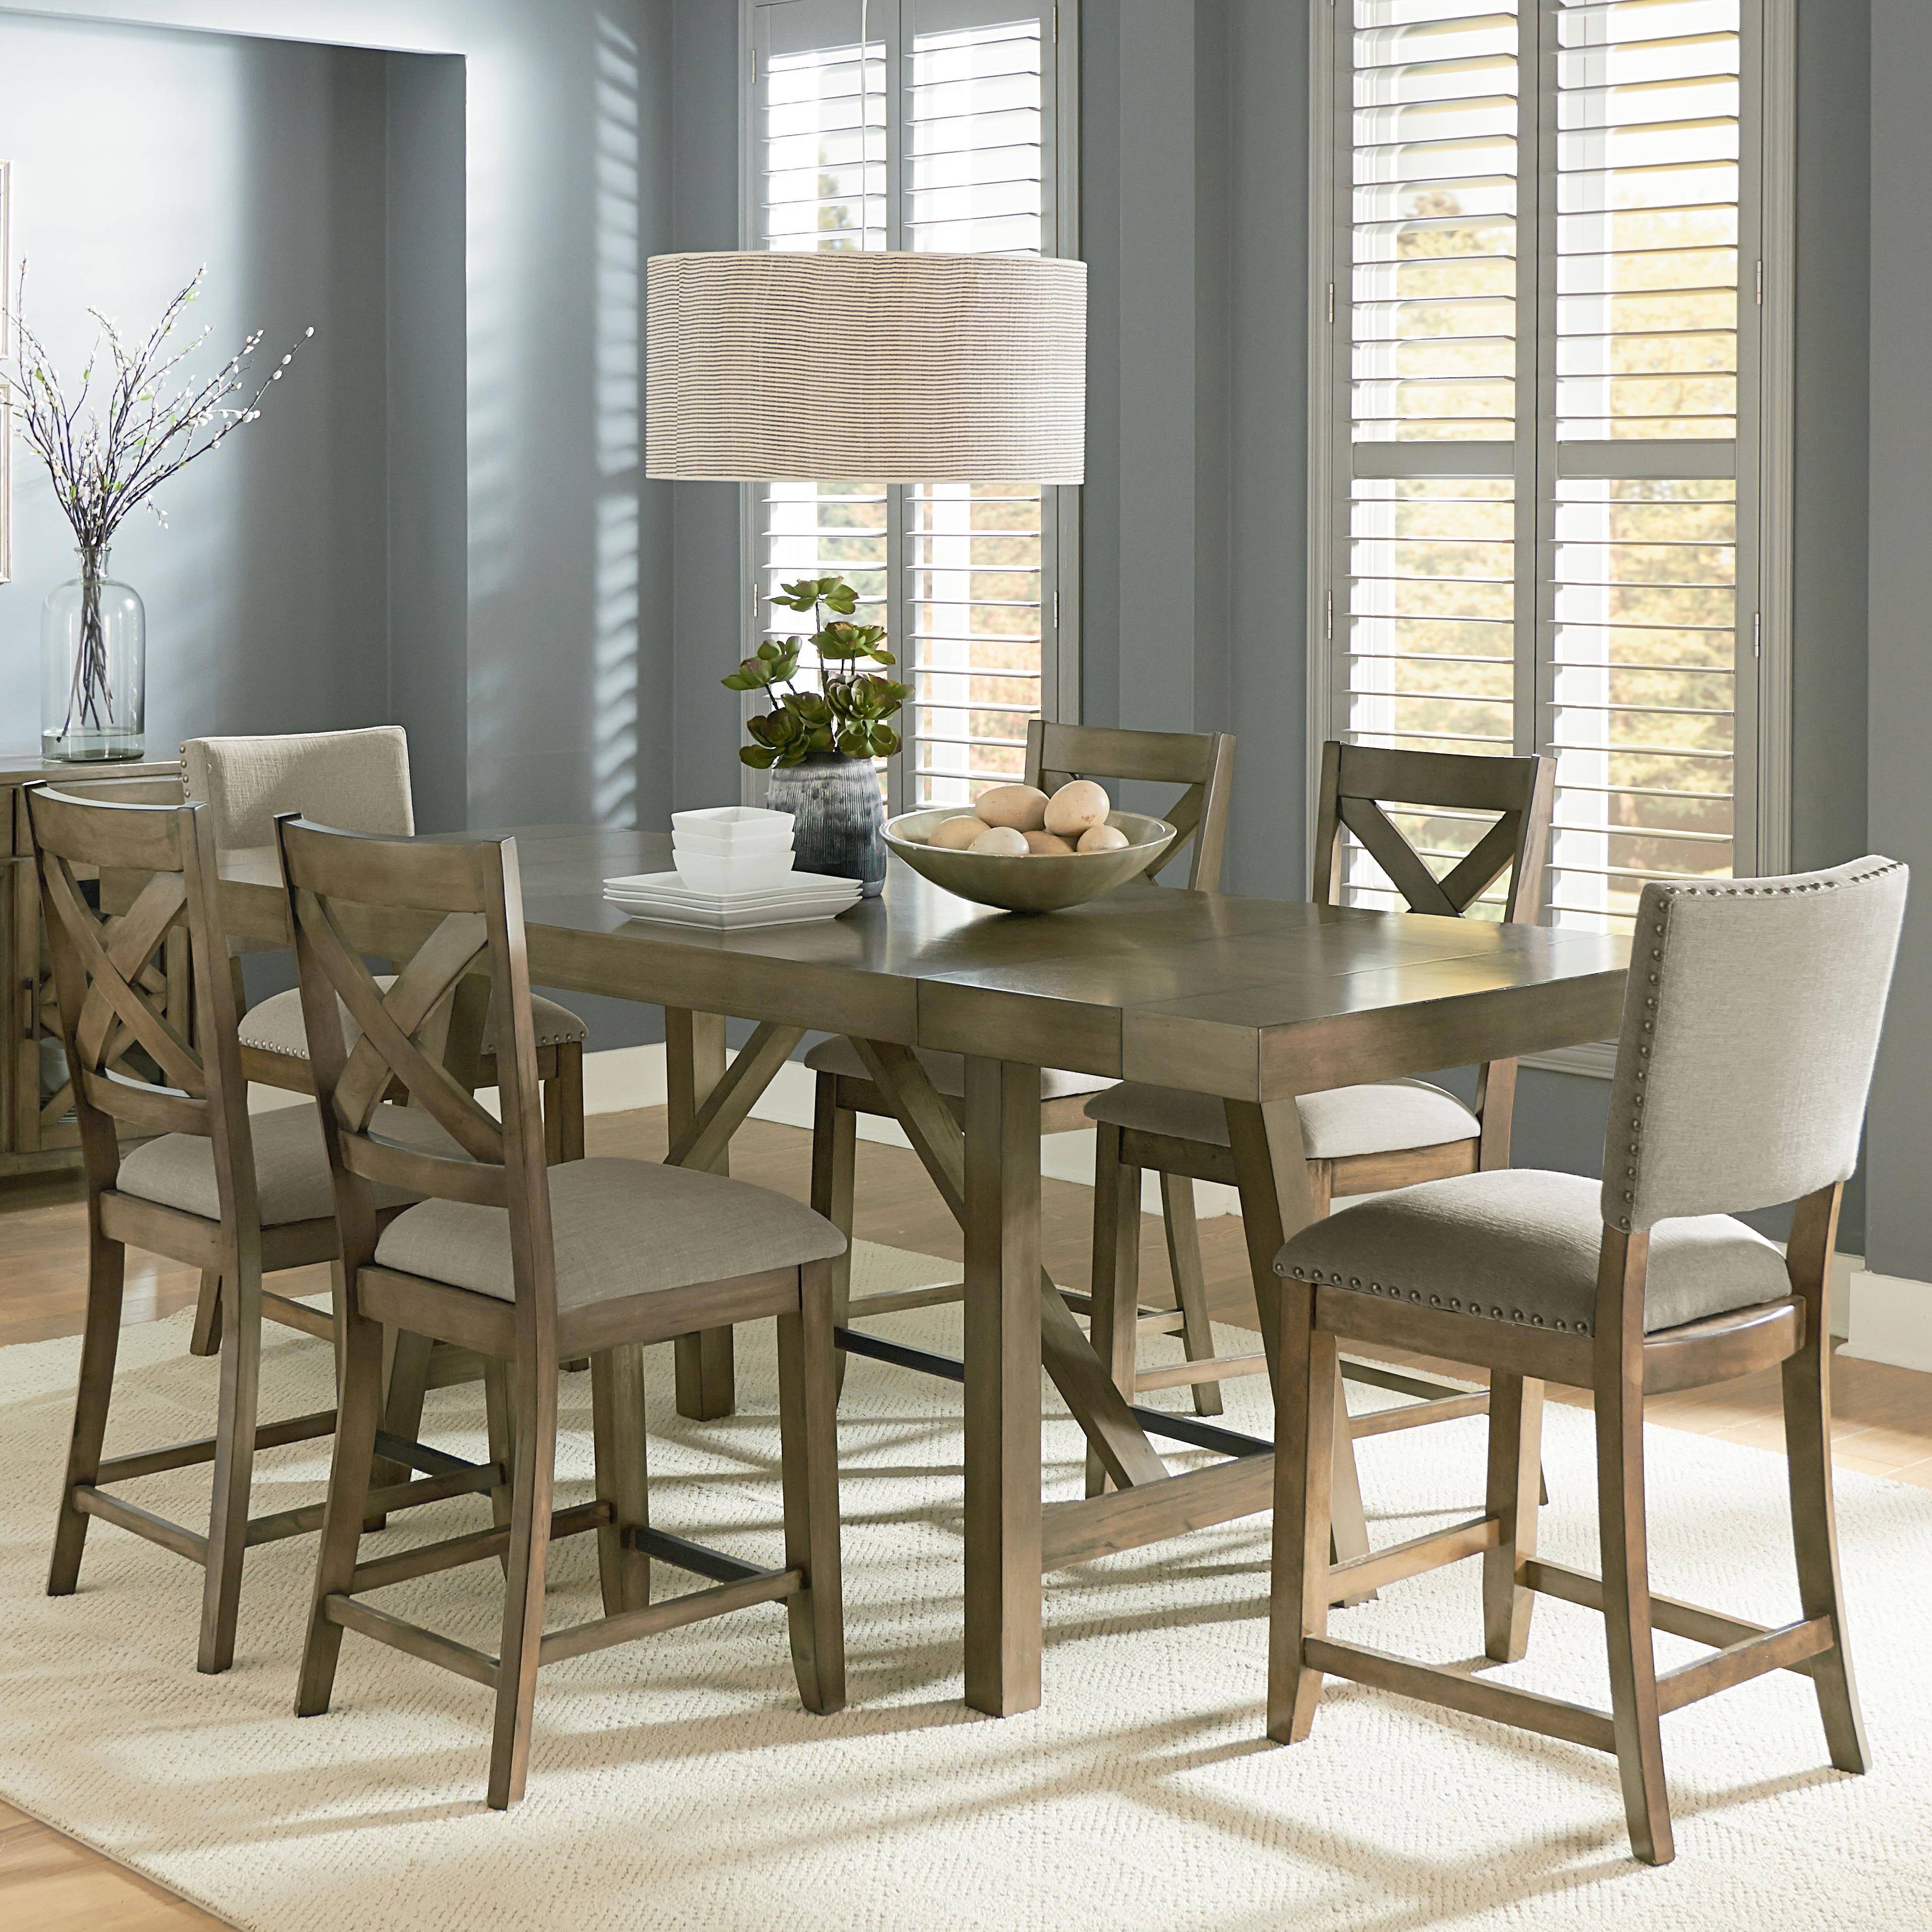 Latest Counter Height 7 Piece Dining Room Table Setstandard Furniture Within Parquet 7 Piece Dining Sets (View 11 of 25)